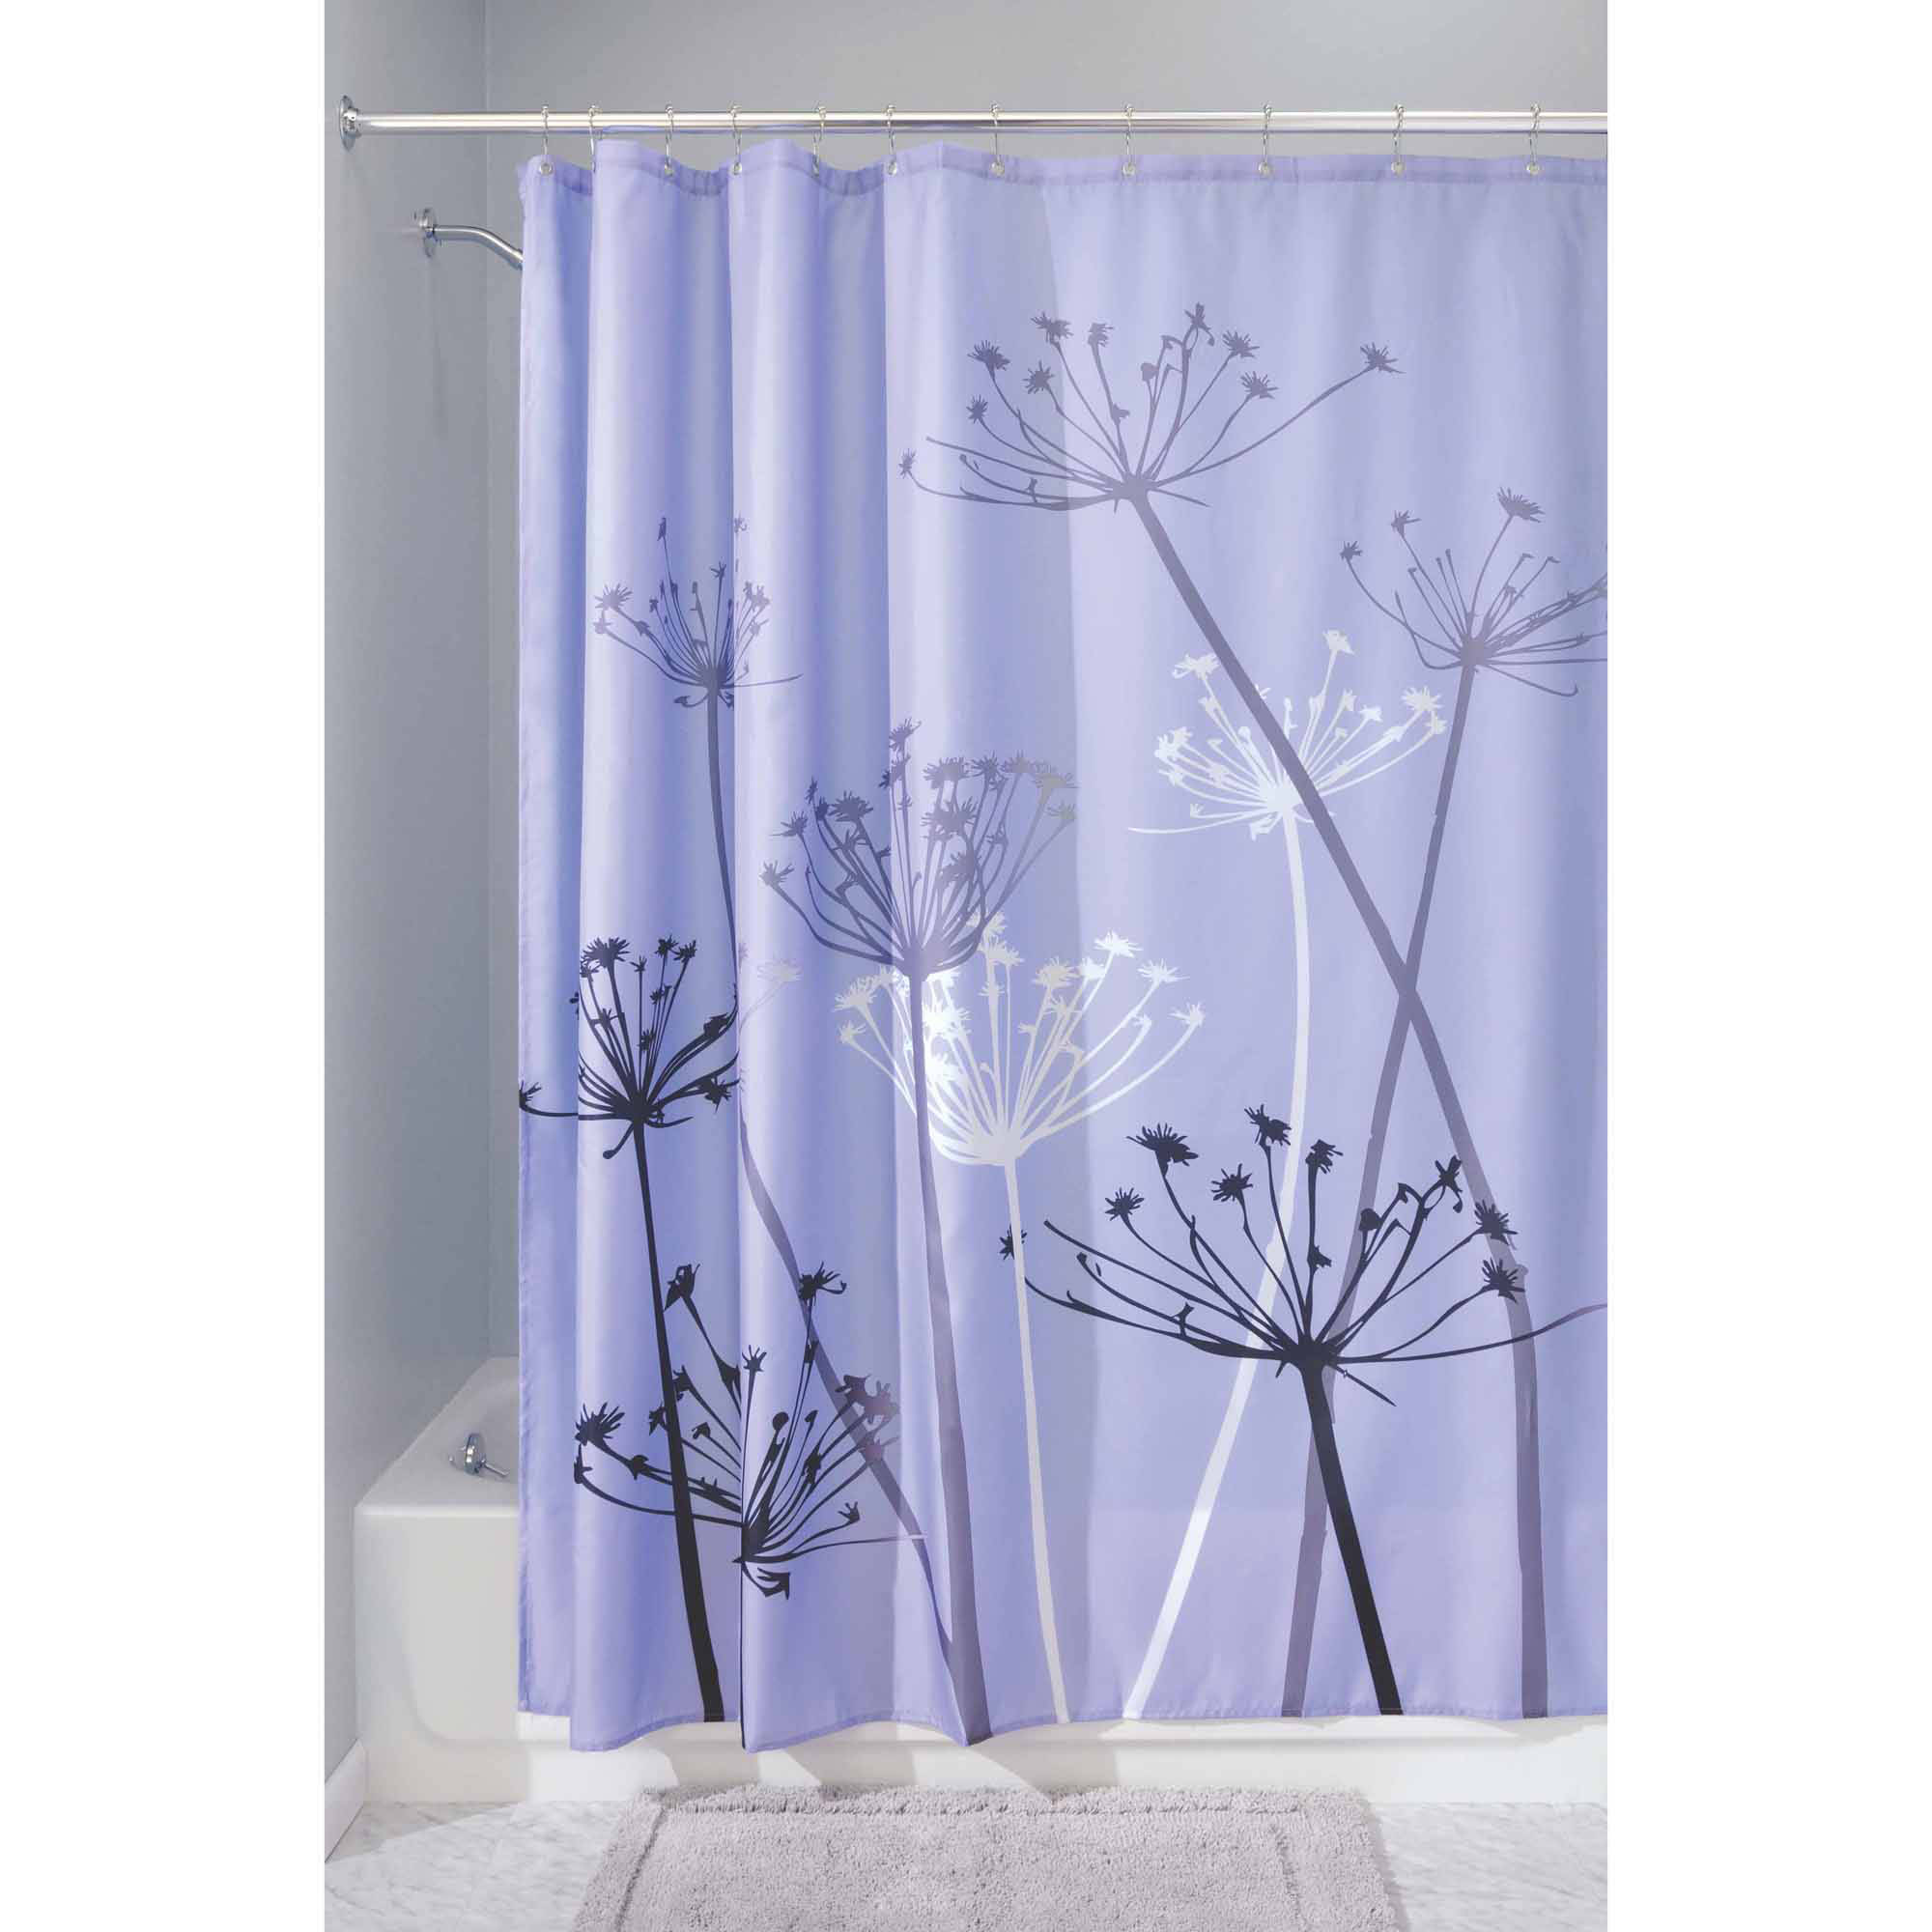 Blue bathroom curtains - Blue Bathroom Curtains 29